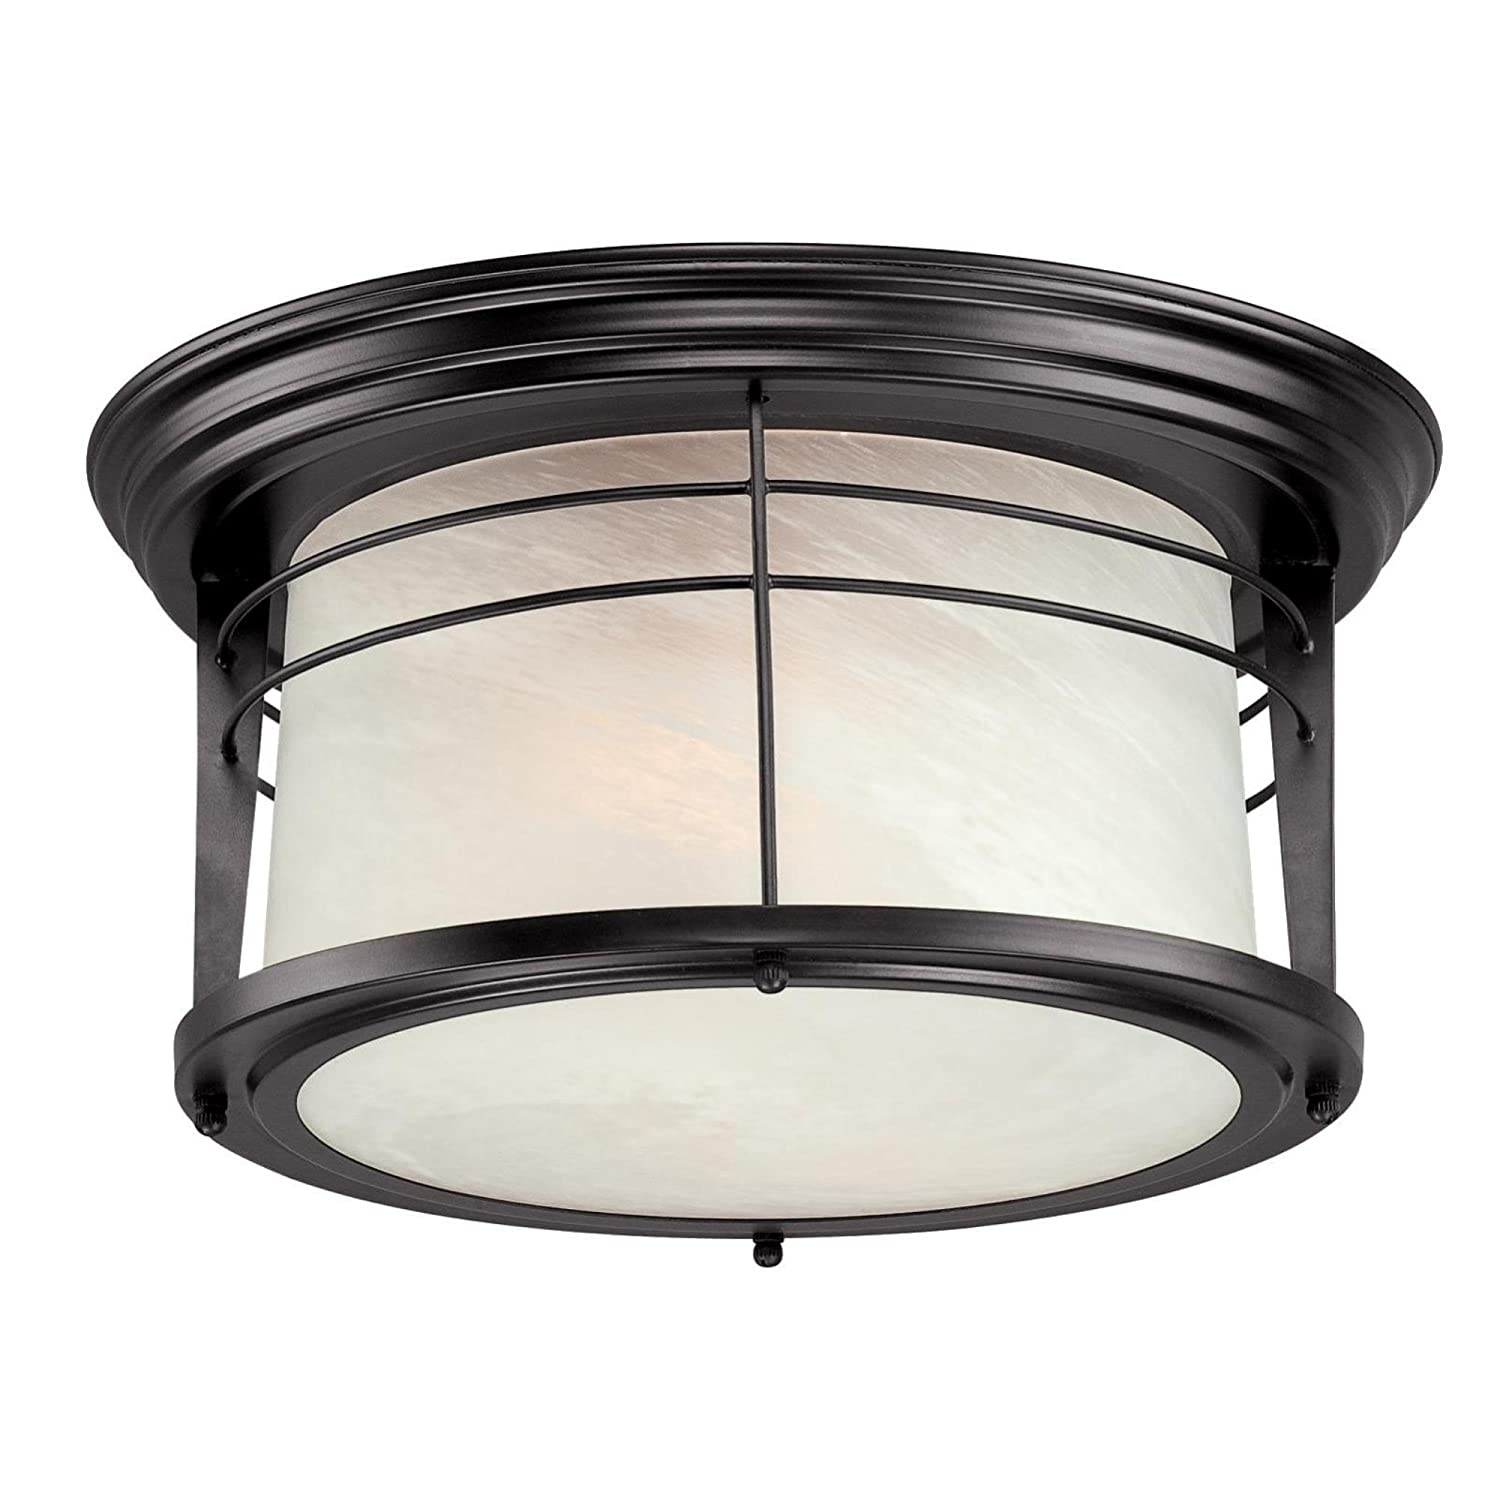 Westinghouse 05937003861 6674600 Senecaville Two-Light Exterior Flush-Mount Fixture, Weathered Bronze Finish on Steel with White Alabaster Glass, 1